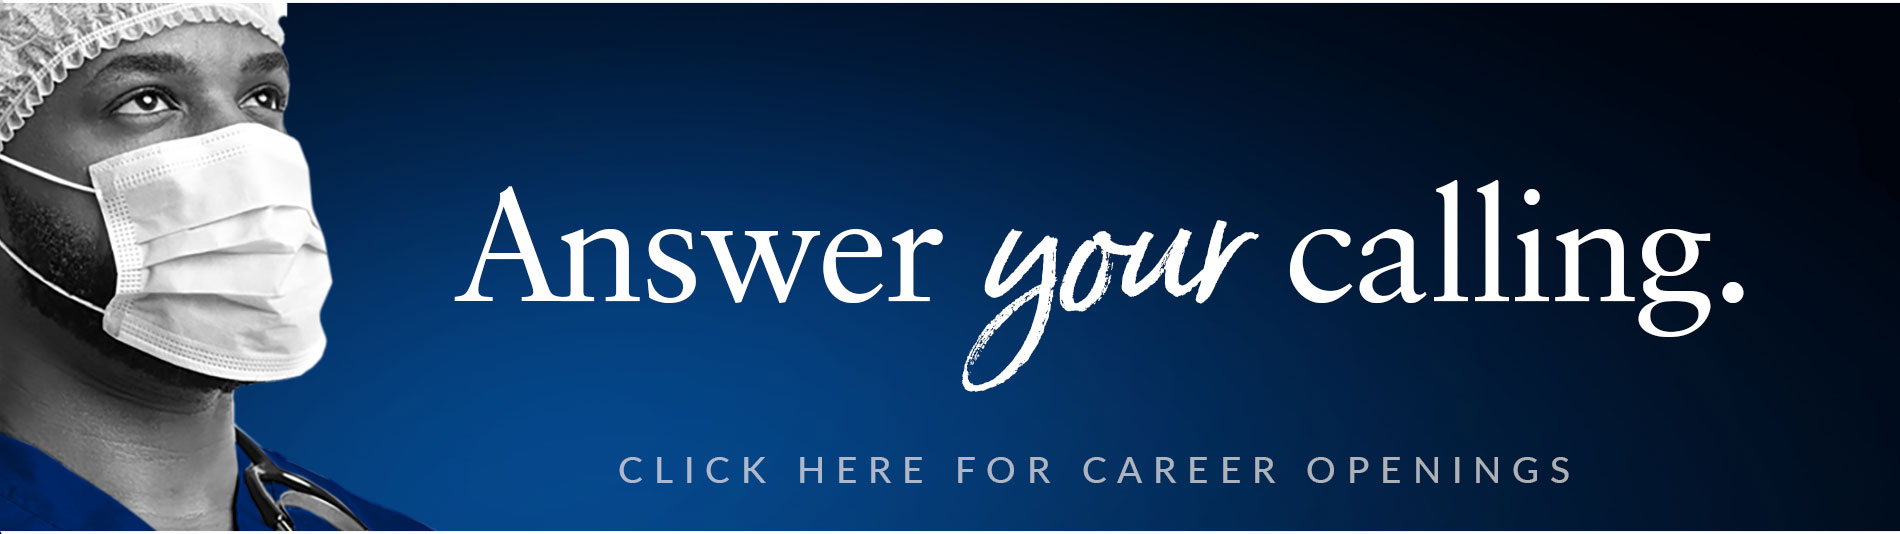 Answer your calling - click here for career openings